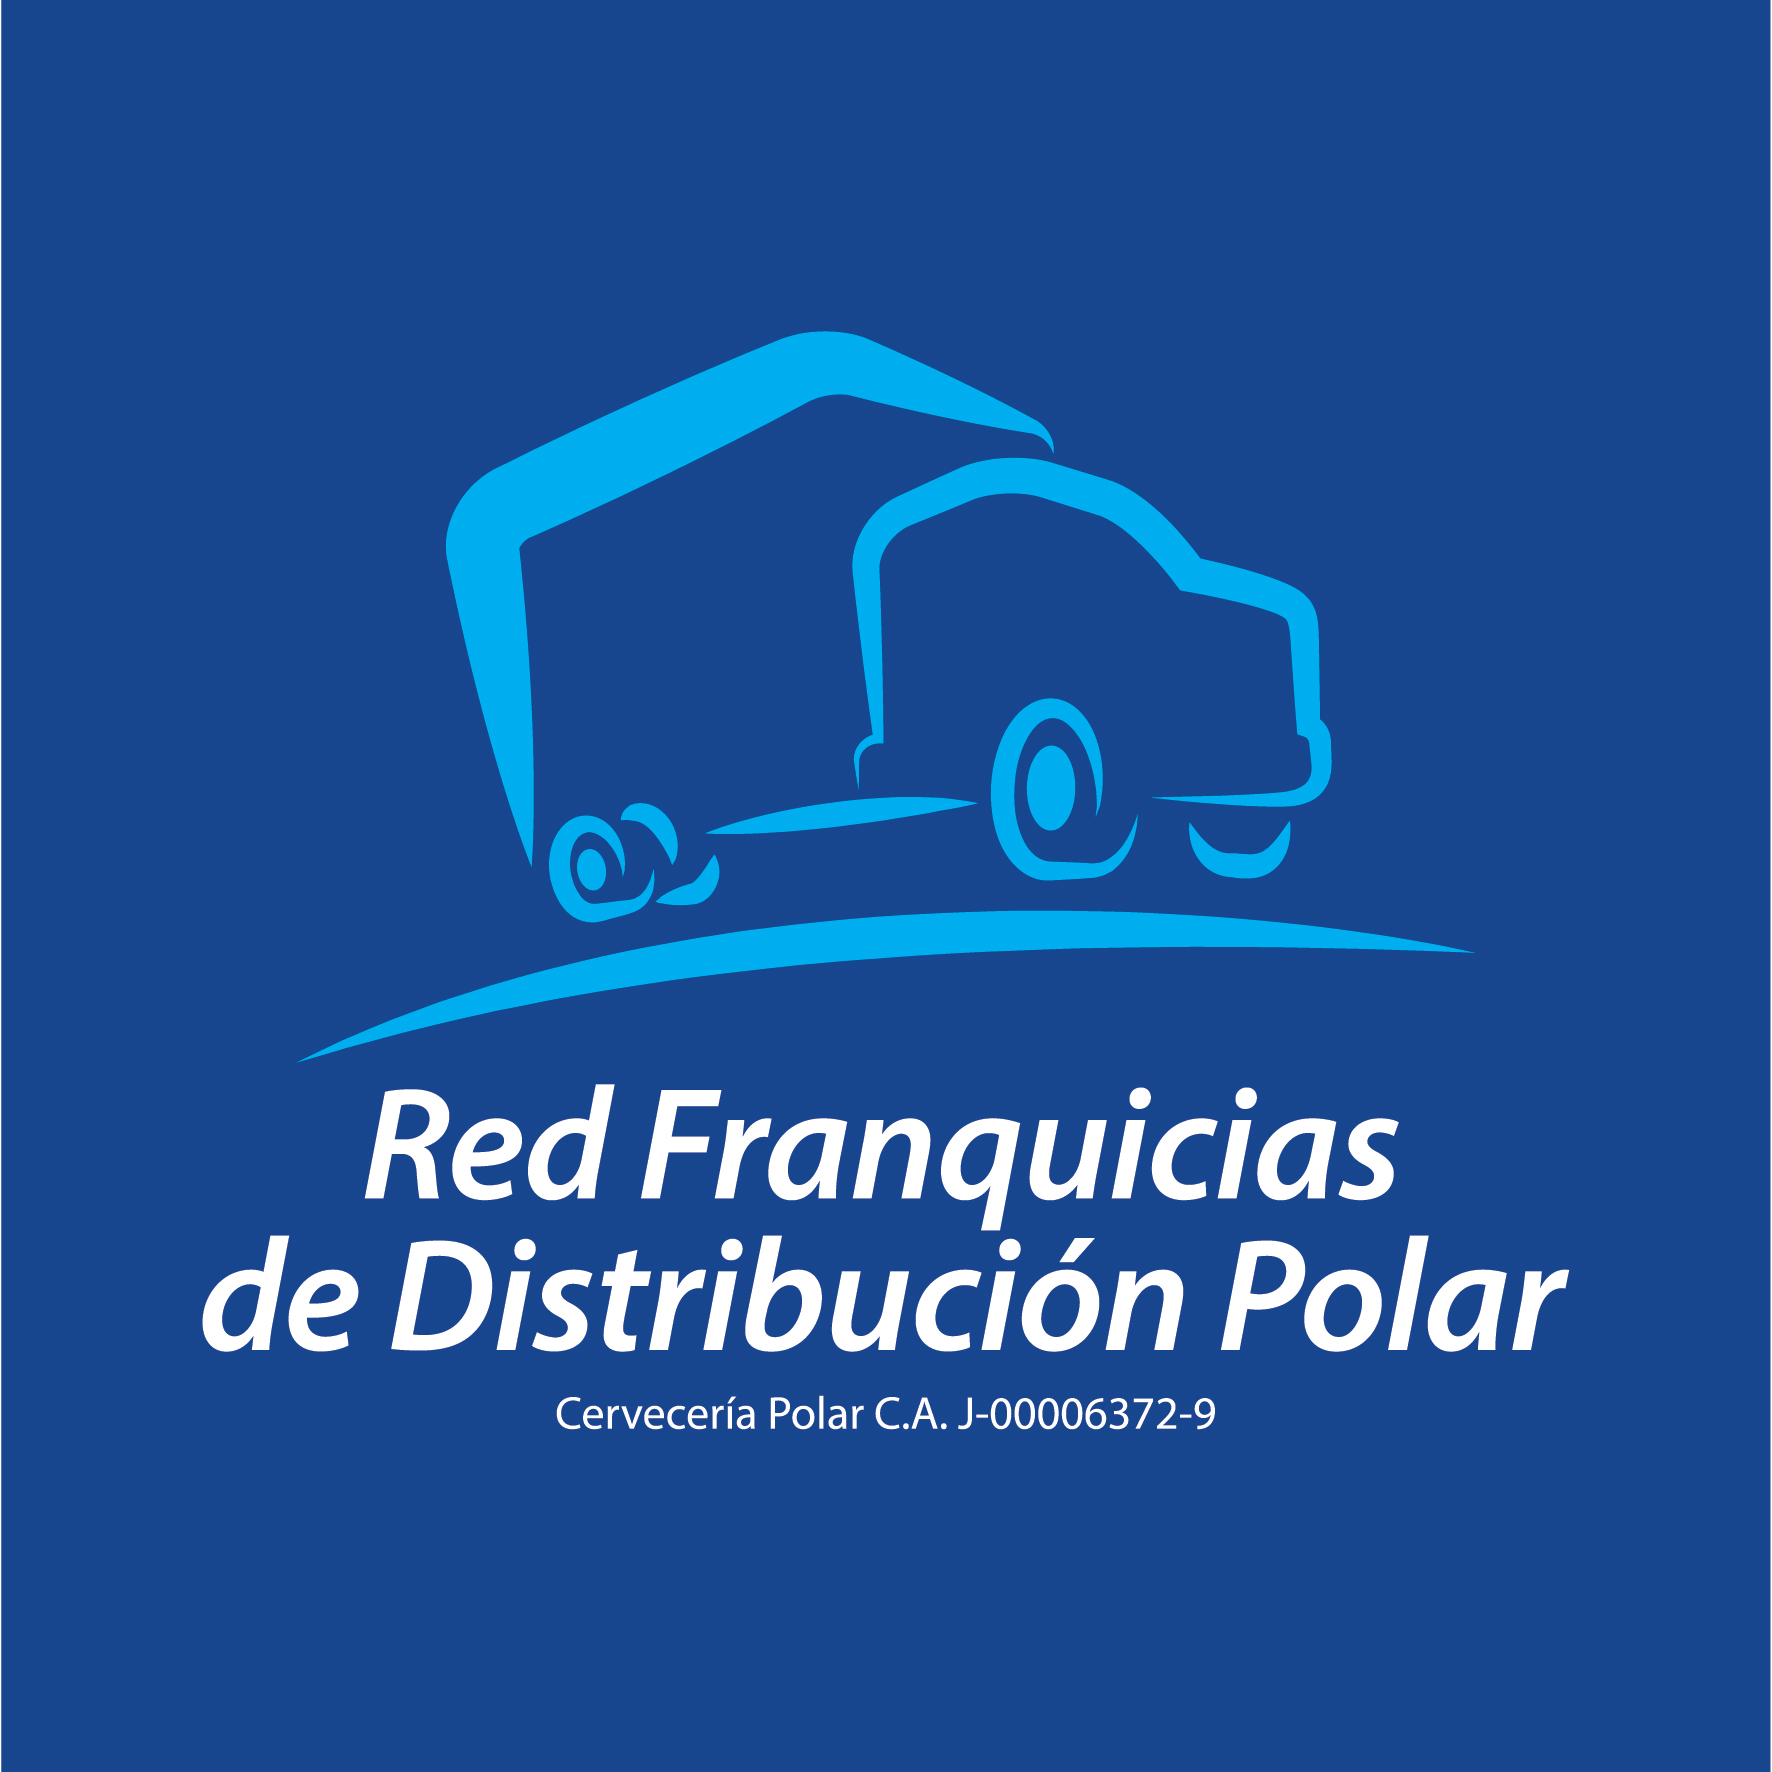 Red Franquicias de Distribución Polar